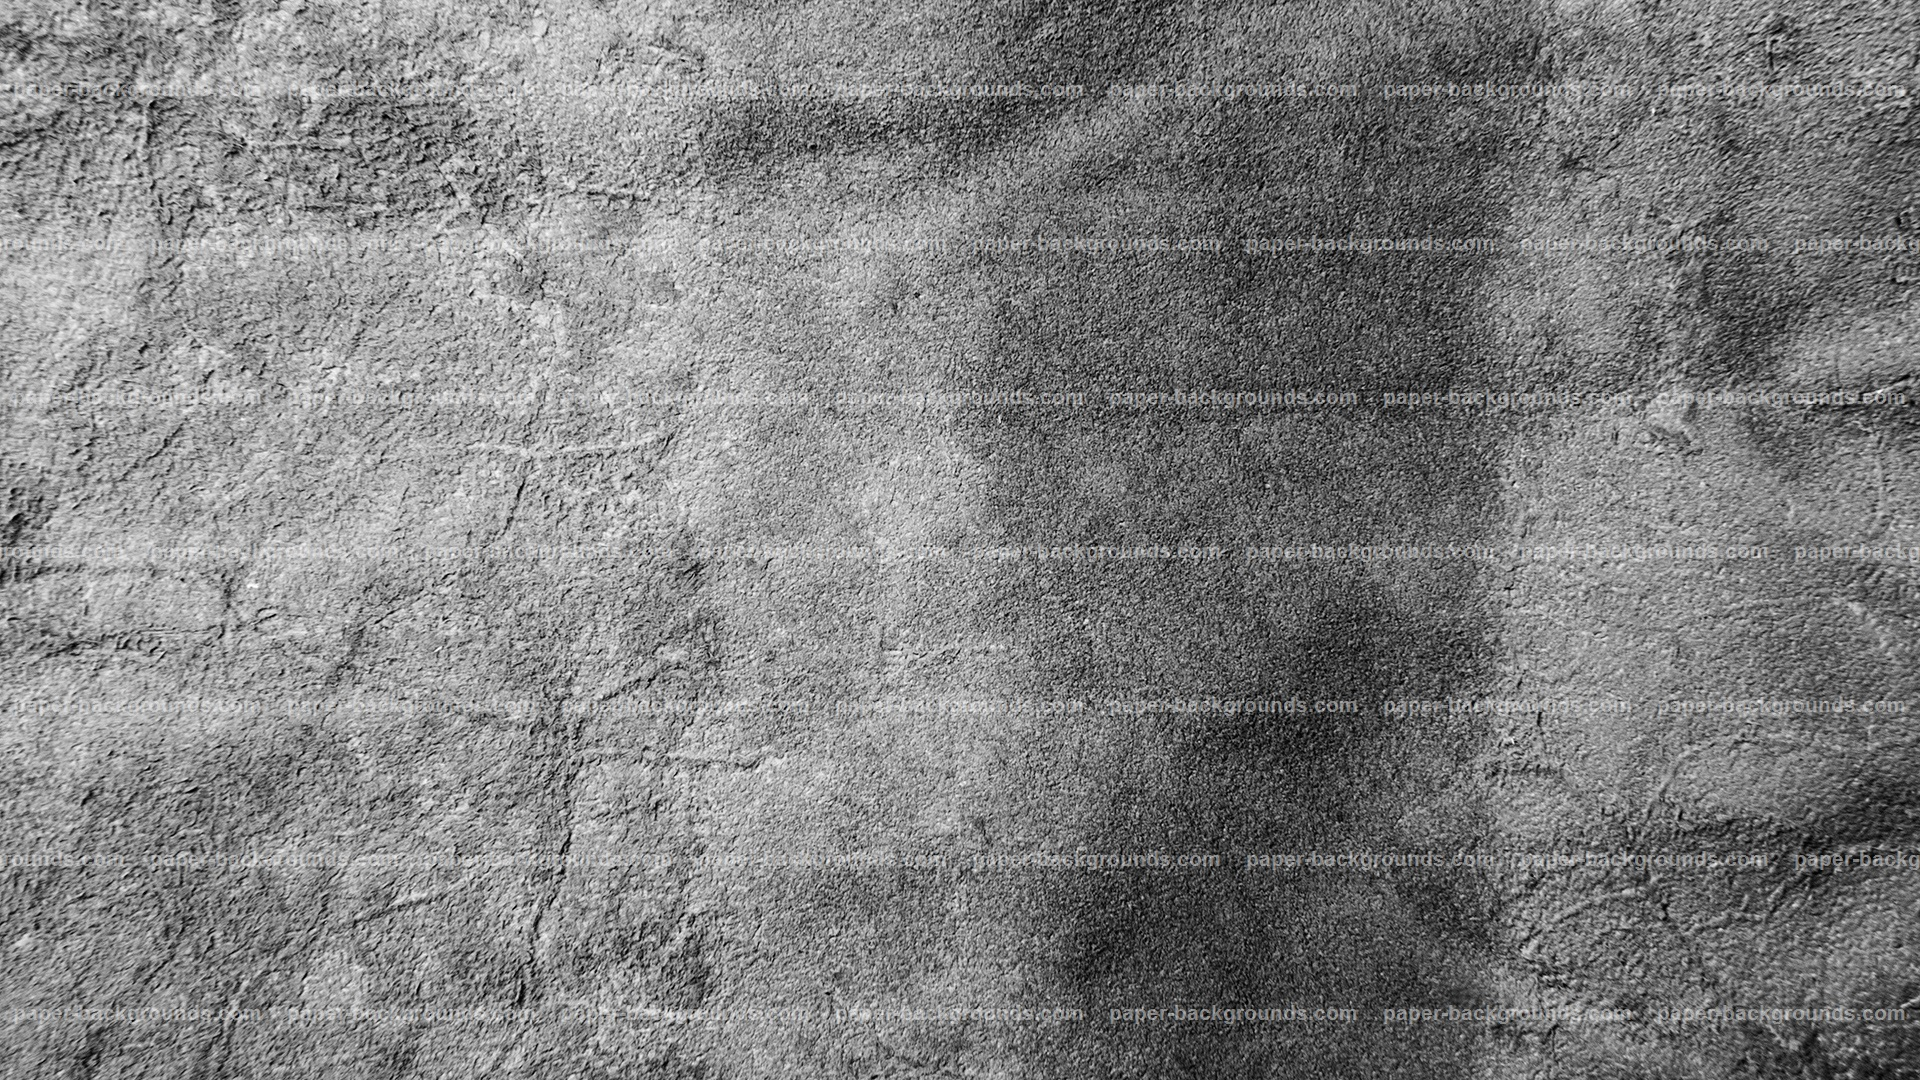 Abstract Grunge Texture Download PPT Backgrounds